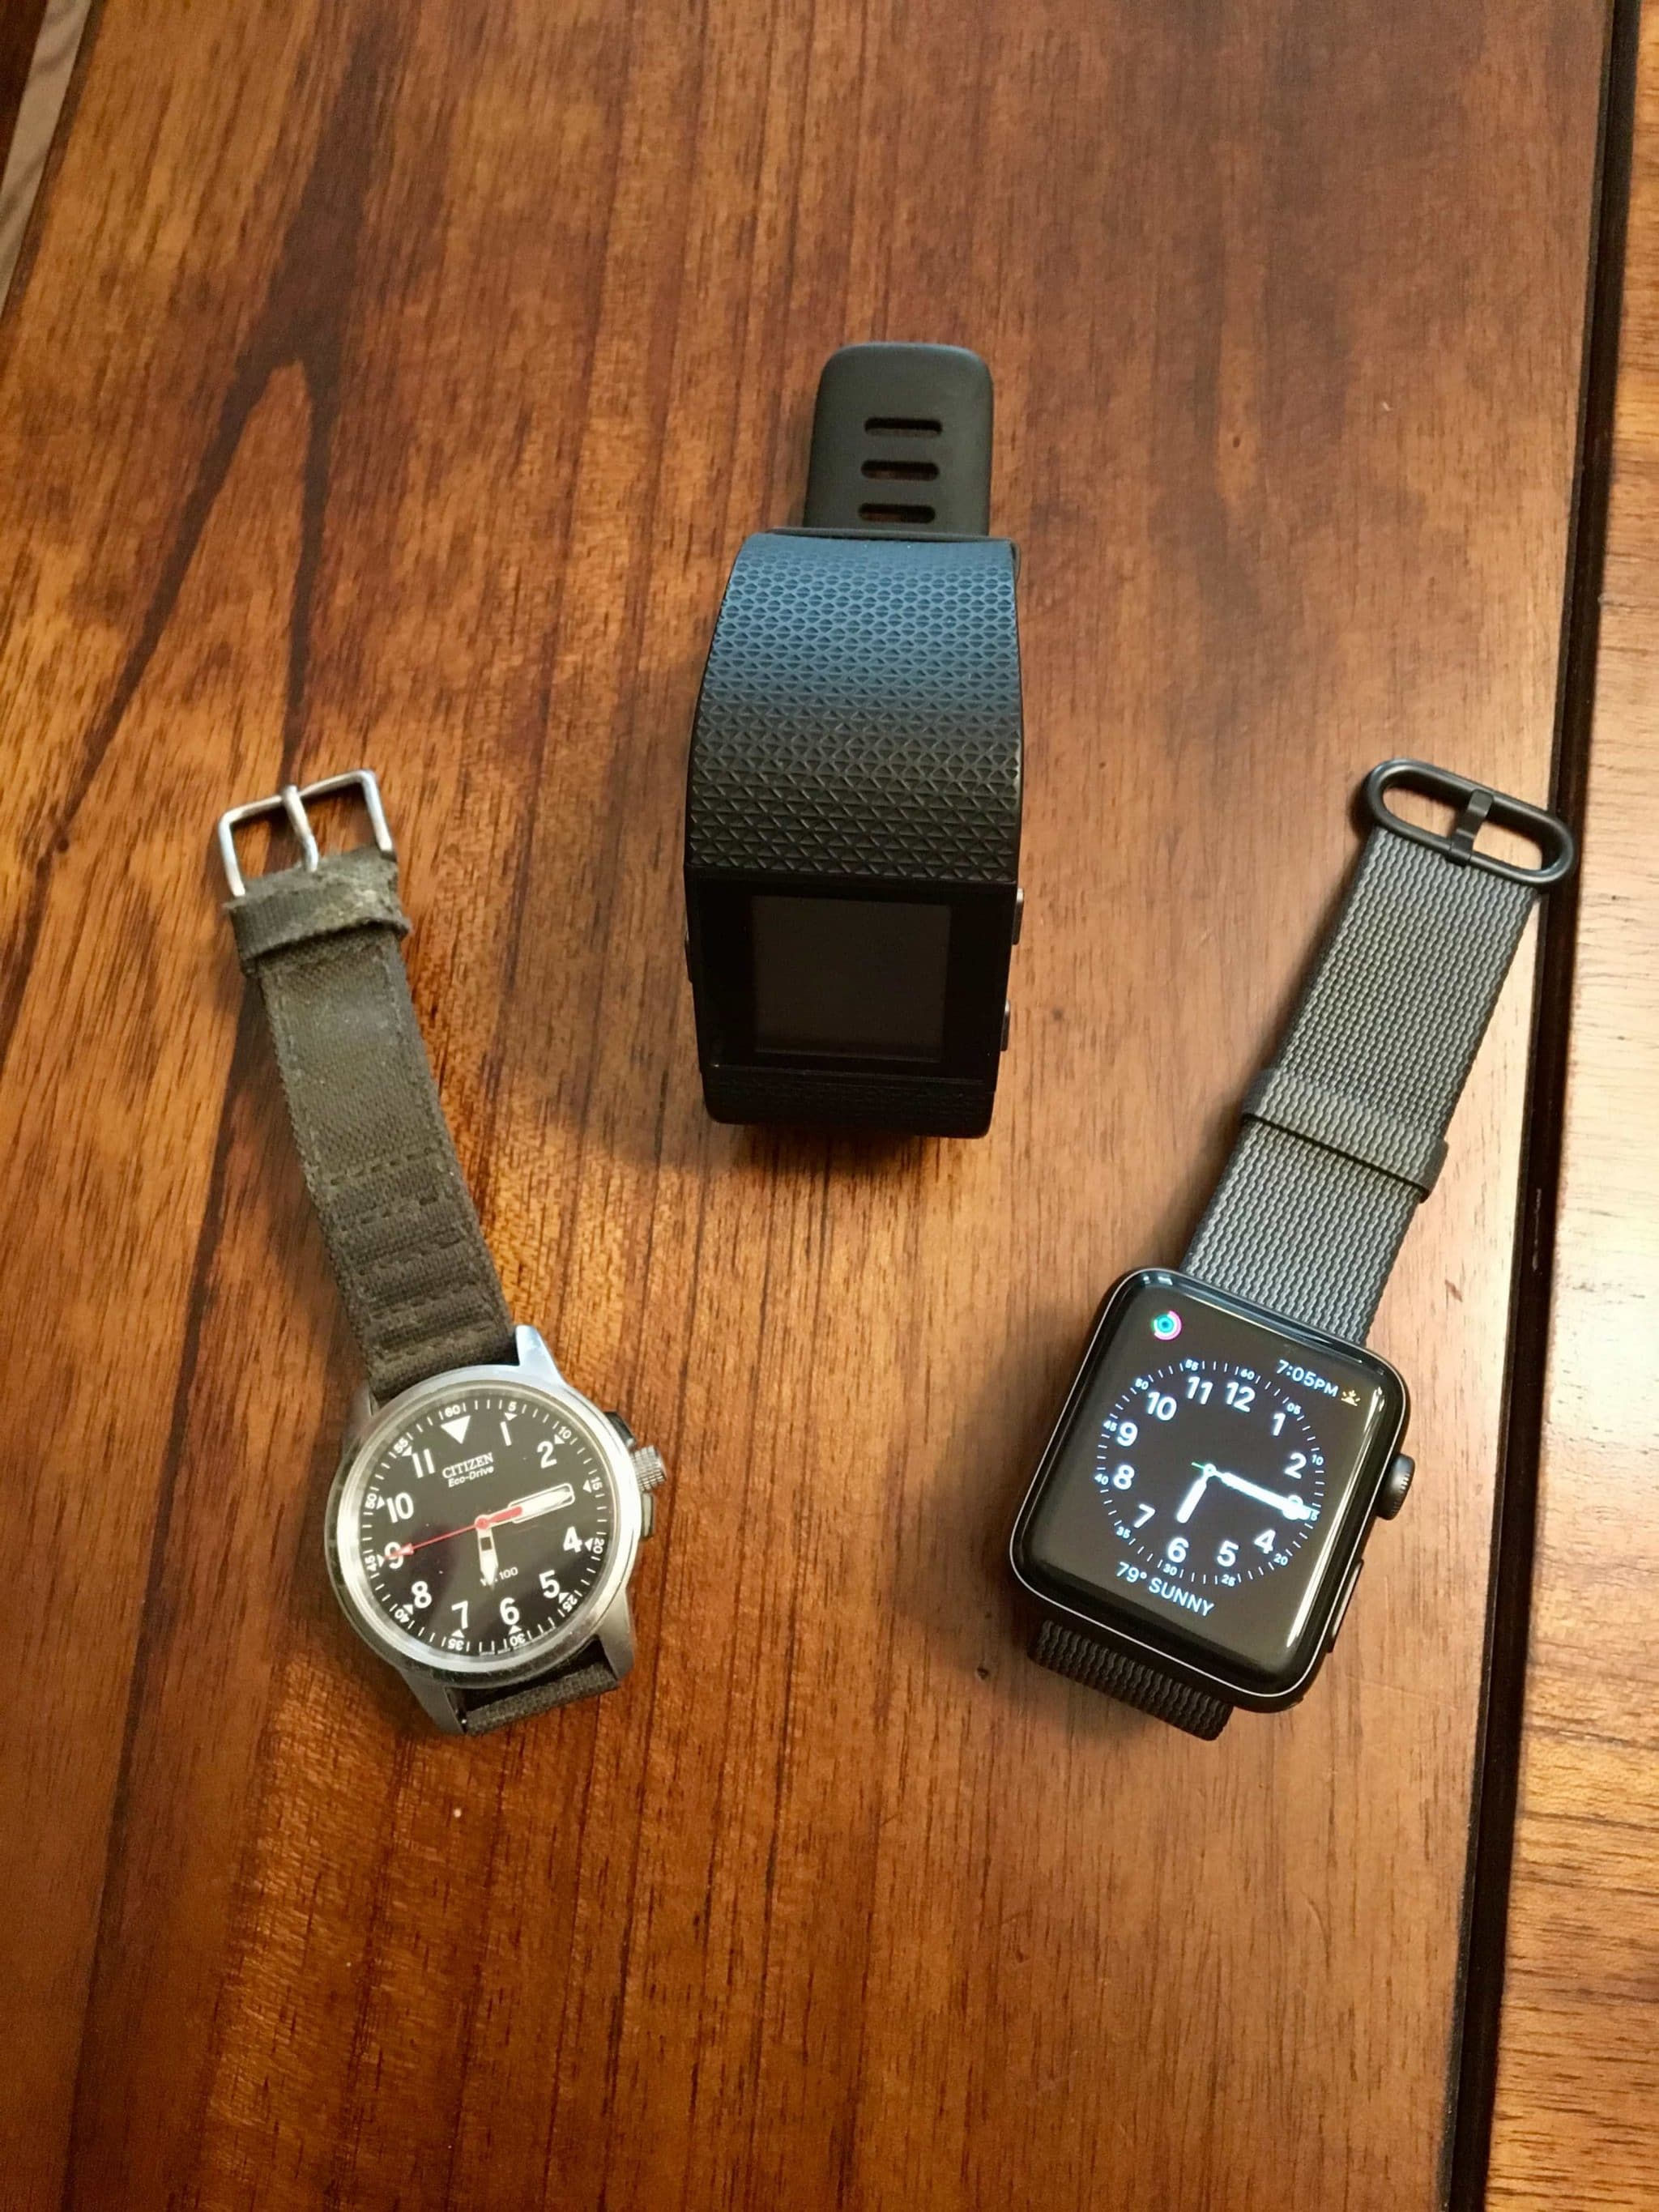 Watches Compared